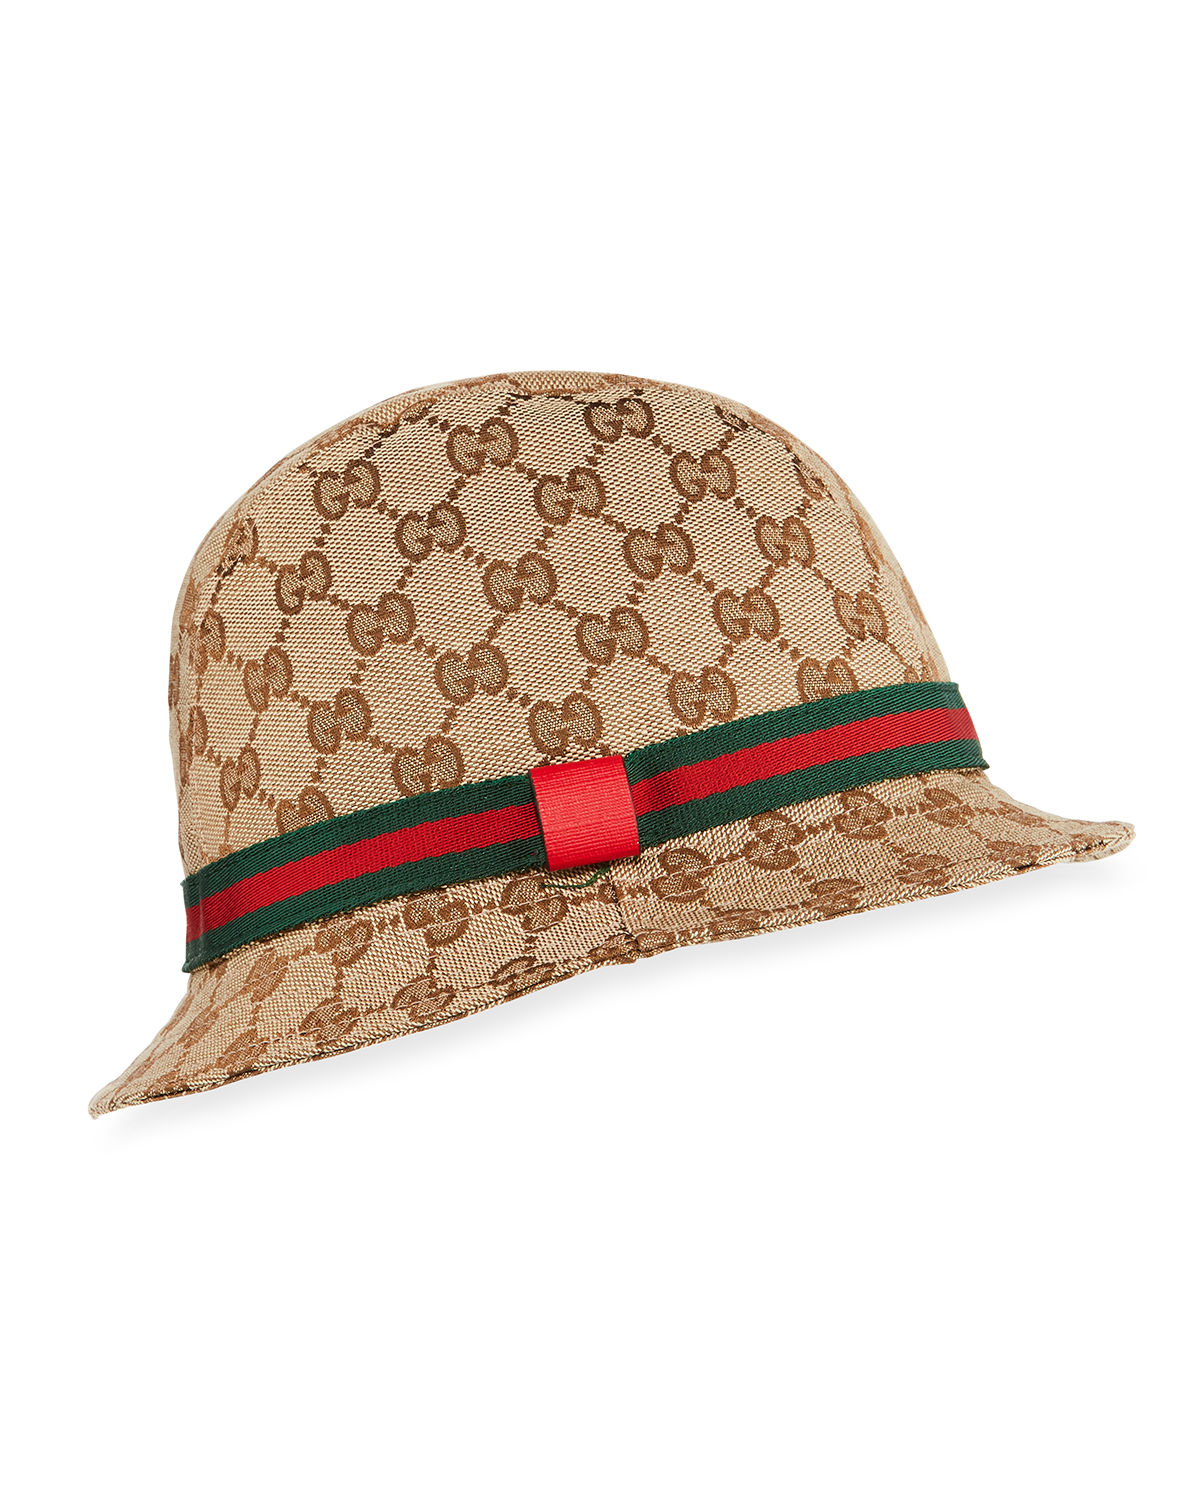 7b1f57bbb5f11 Gucci Kids  GG Supreme Canvas Bucket Hat w  Web Hat Band